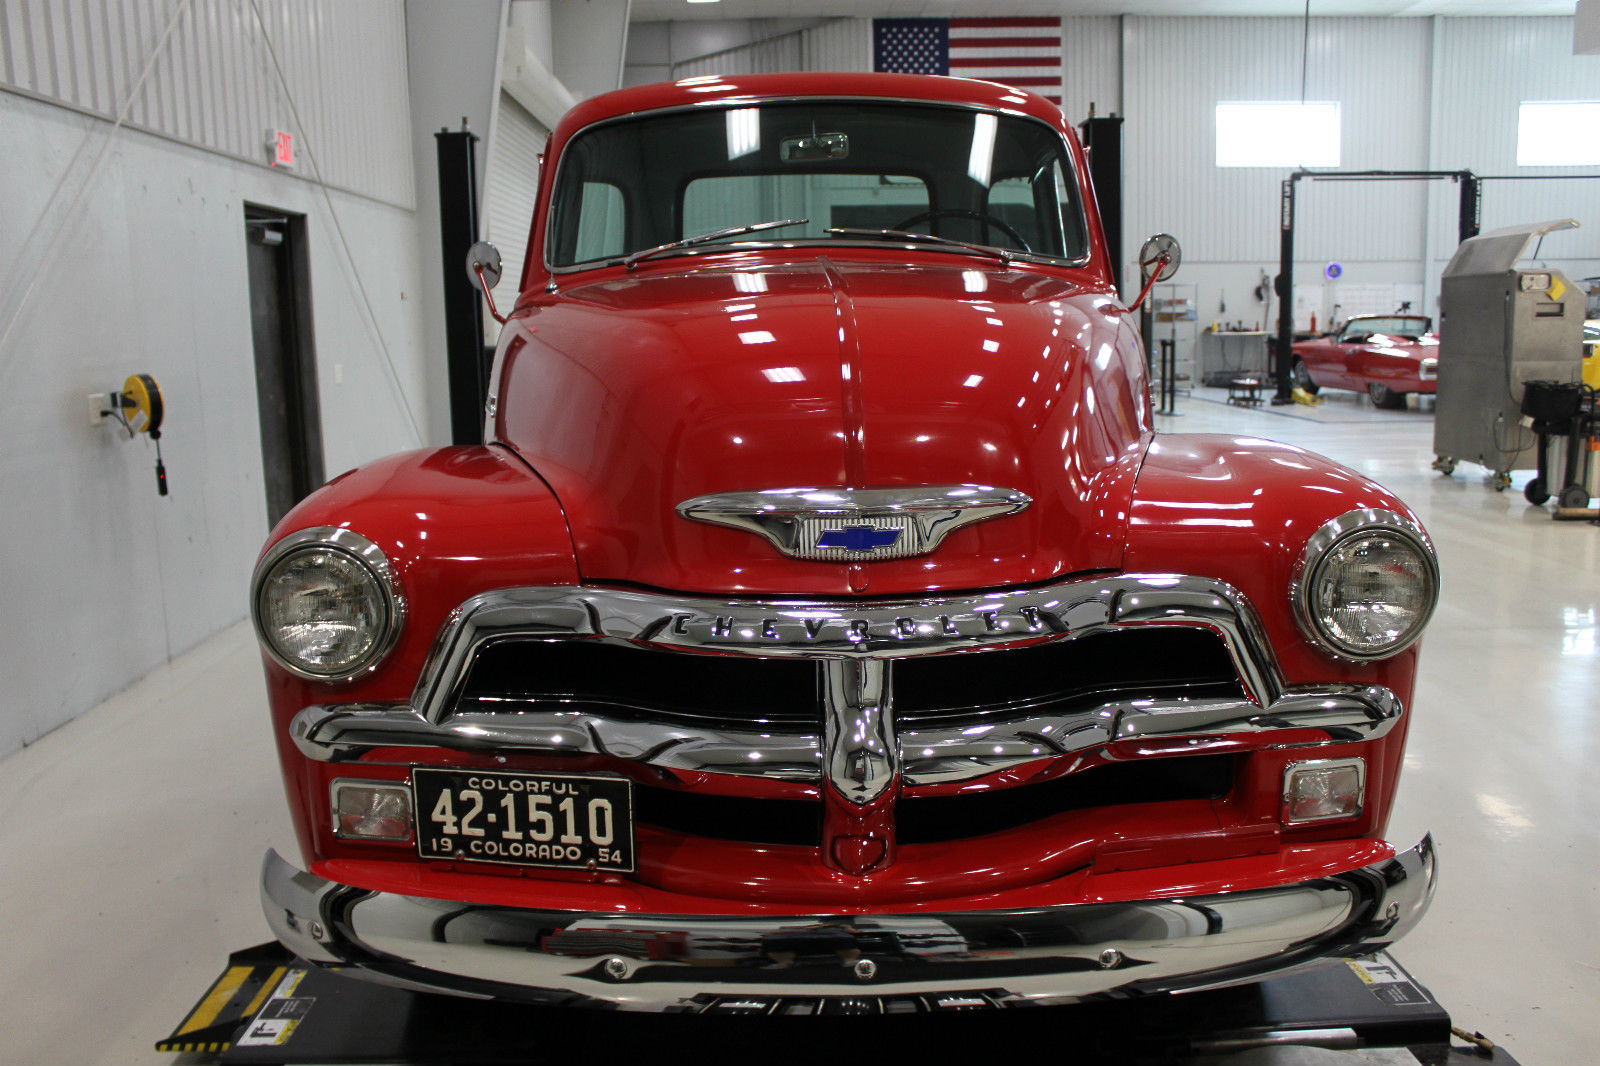 restored 1954 chevrolet pickups 3100 vintage truck for sale. Black Bedroom Furniture Sets. Home Design Ideas